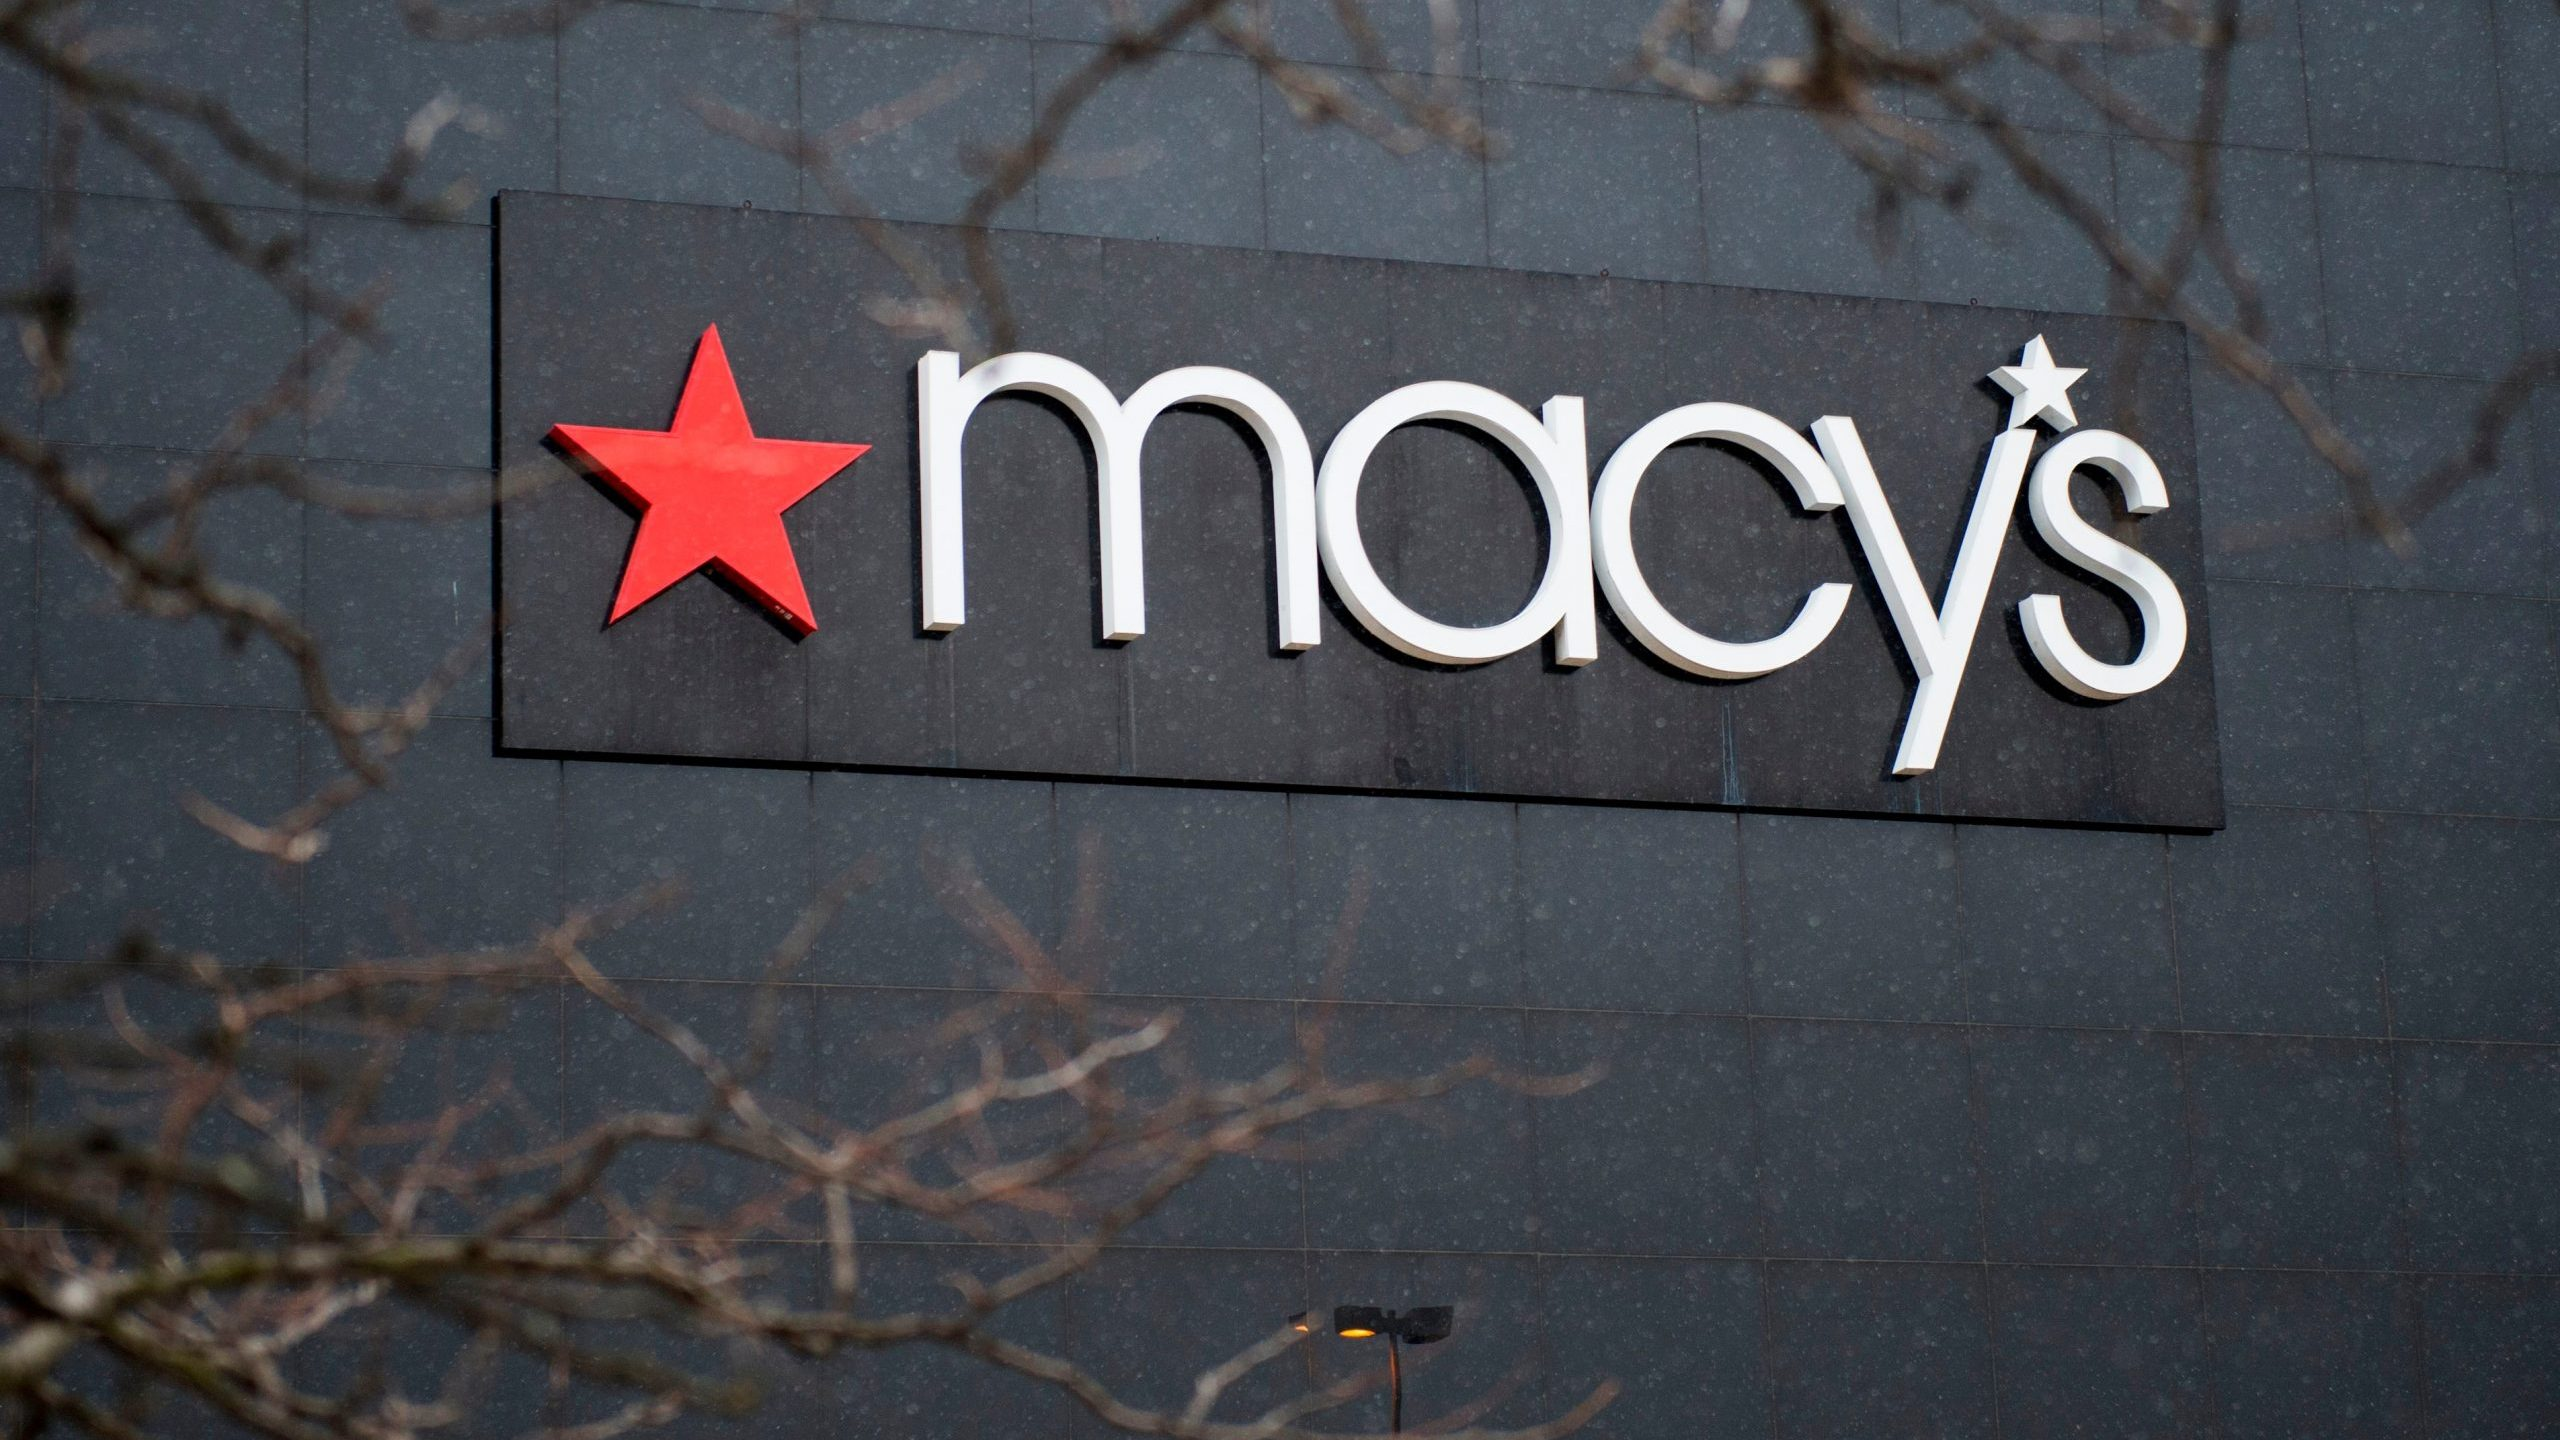 The exterior of a Macy's department store is seen at the Landmark Mall on Jan. 5, 2017, in Arlington, Virginia. (Credit: ANDREW CABALLERO-REYNOLDS/AFP via Getty Images)